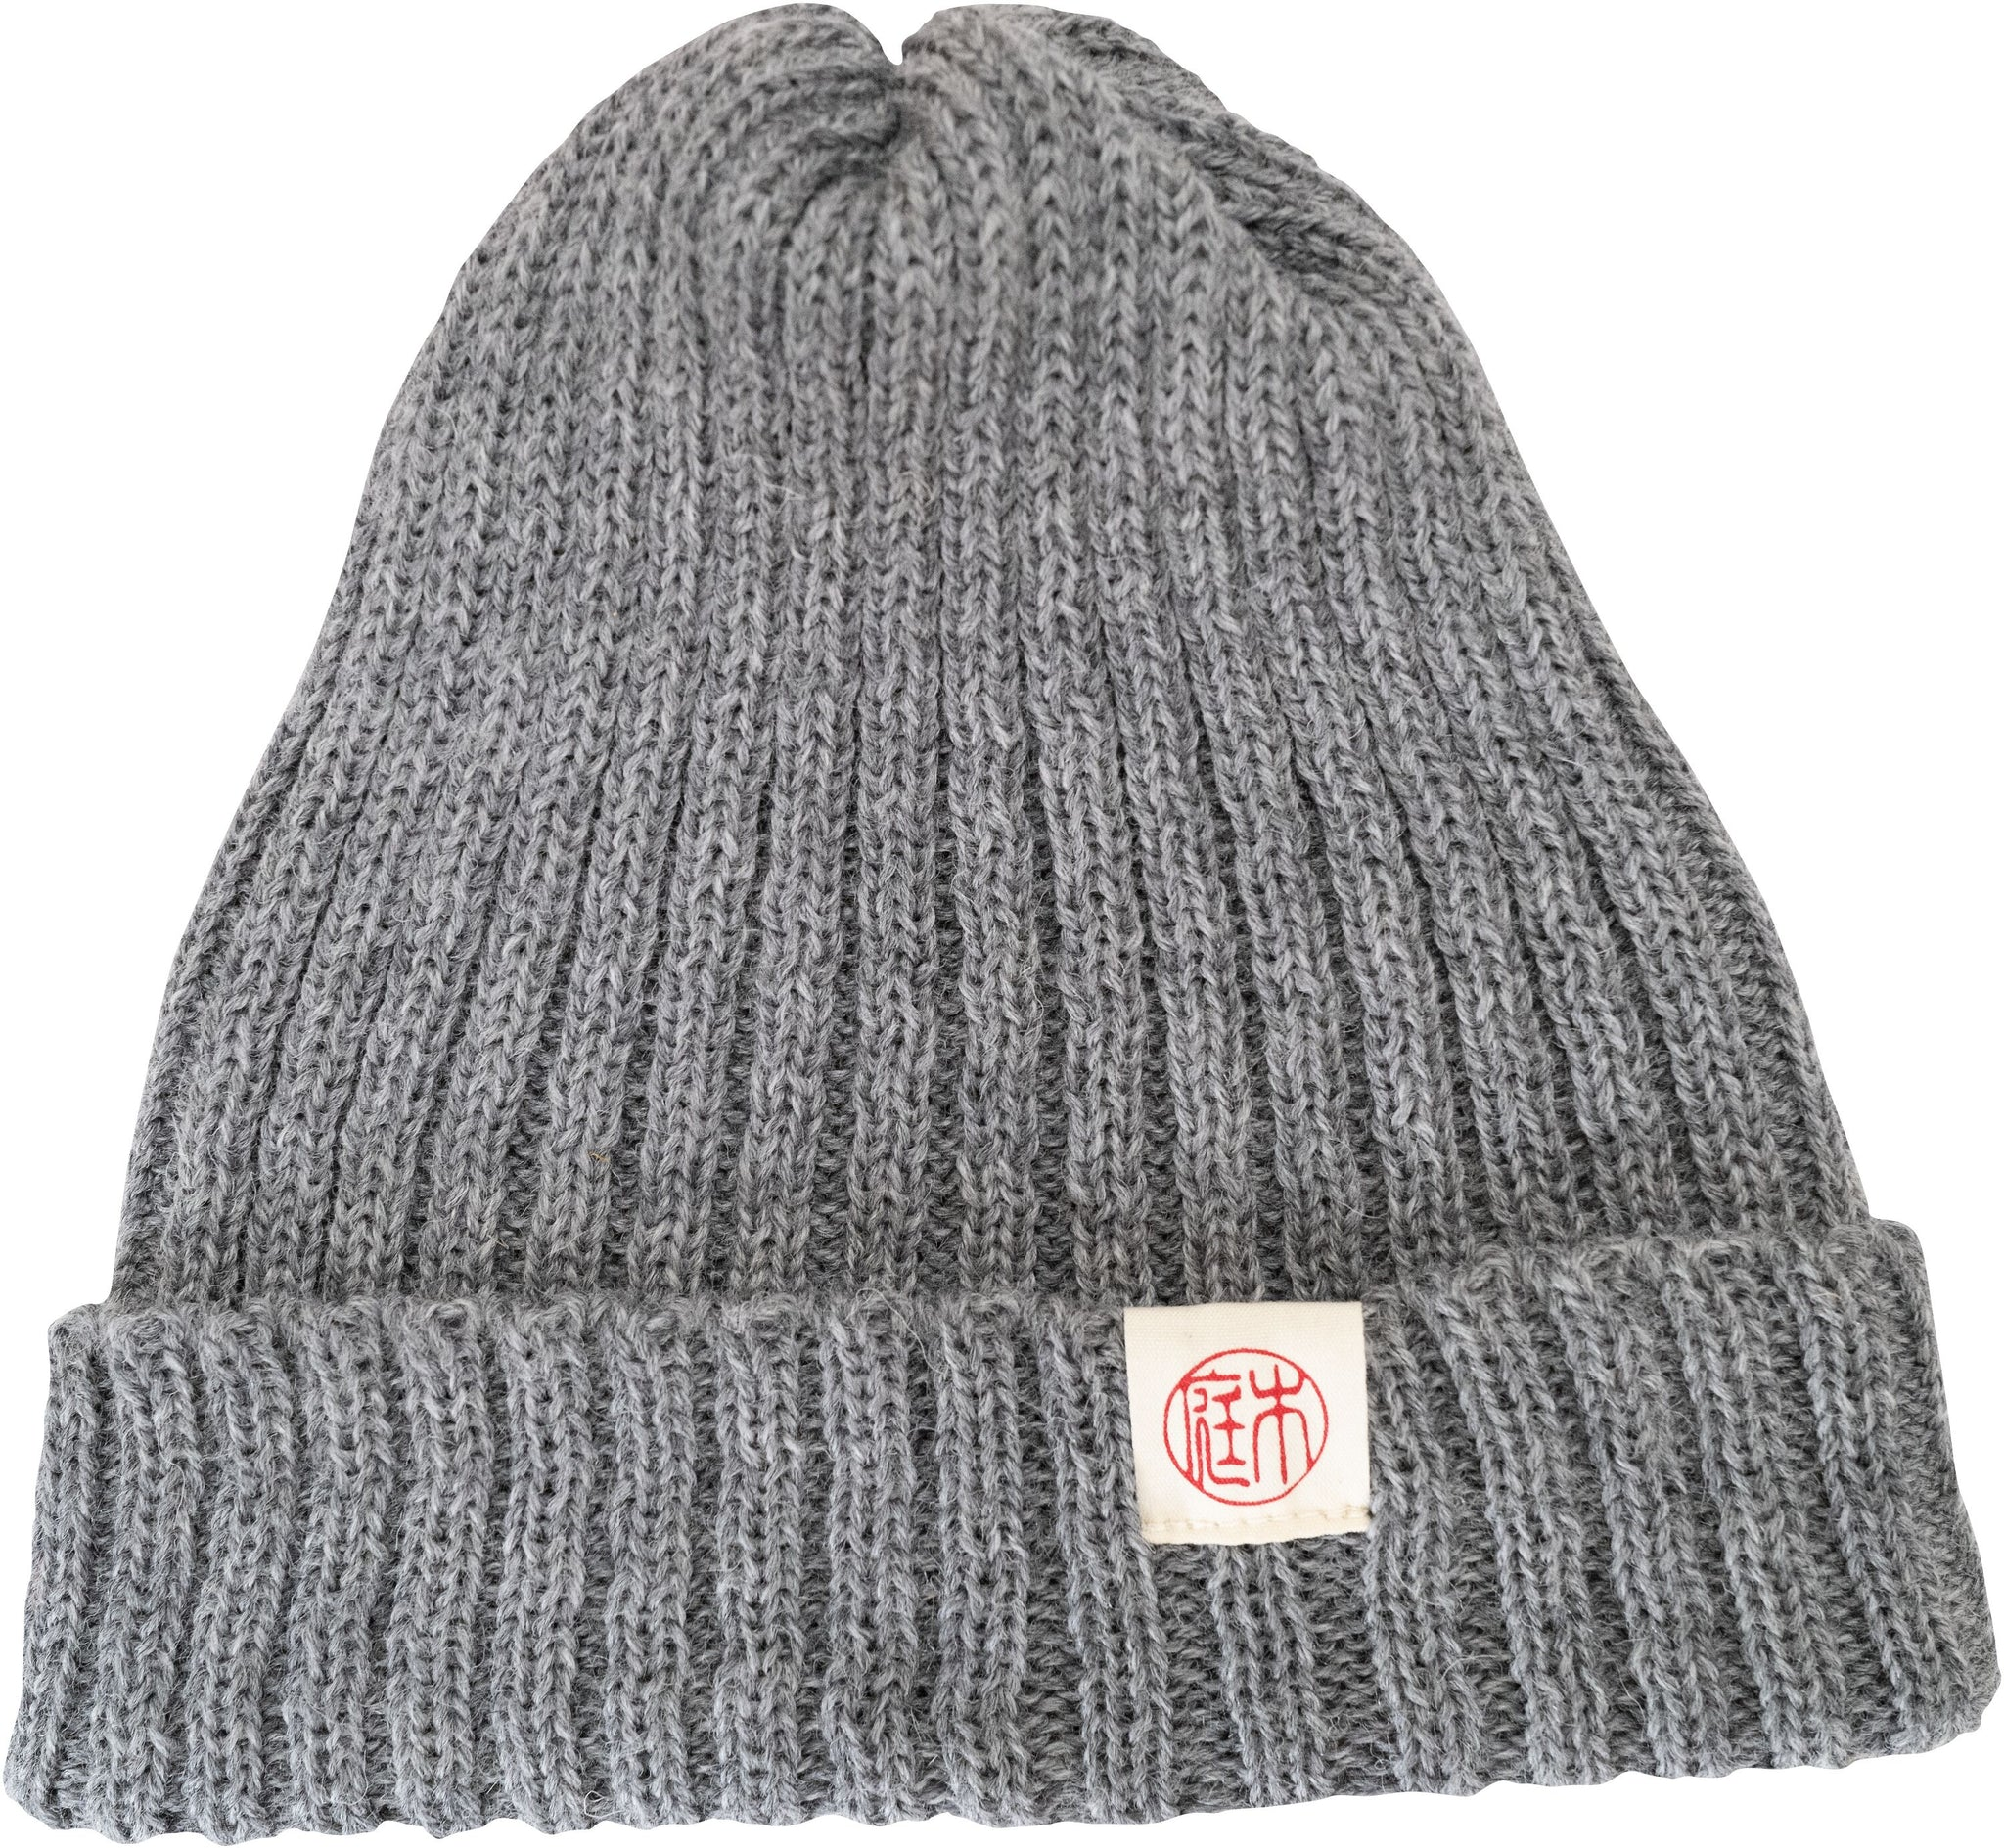 Raw unrefined and unprocessed wool beanie hat by authentic Japanese brand Niwaki, in mouse grey featuring ribbing and Niwaki 'hanko' logo.